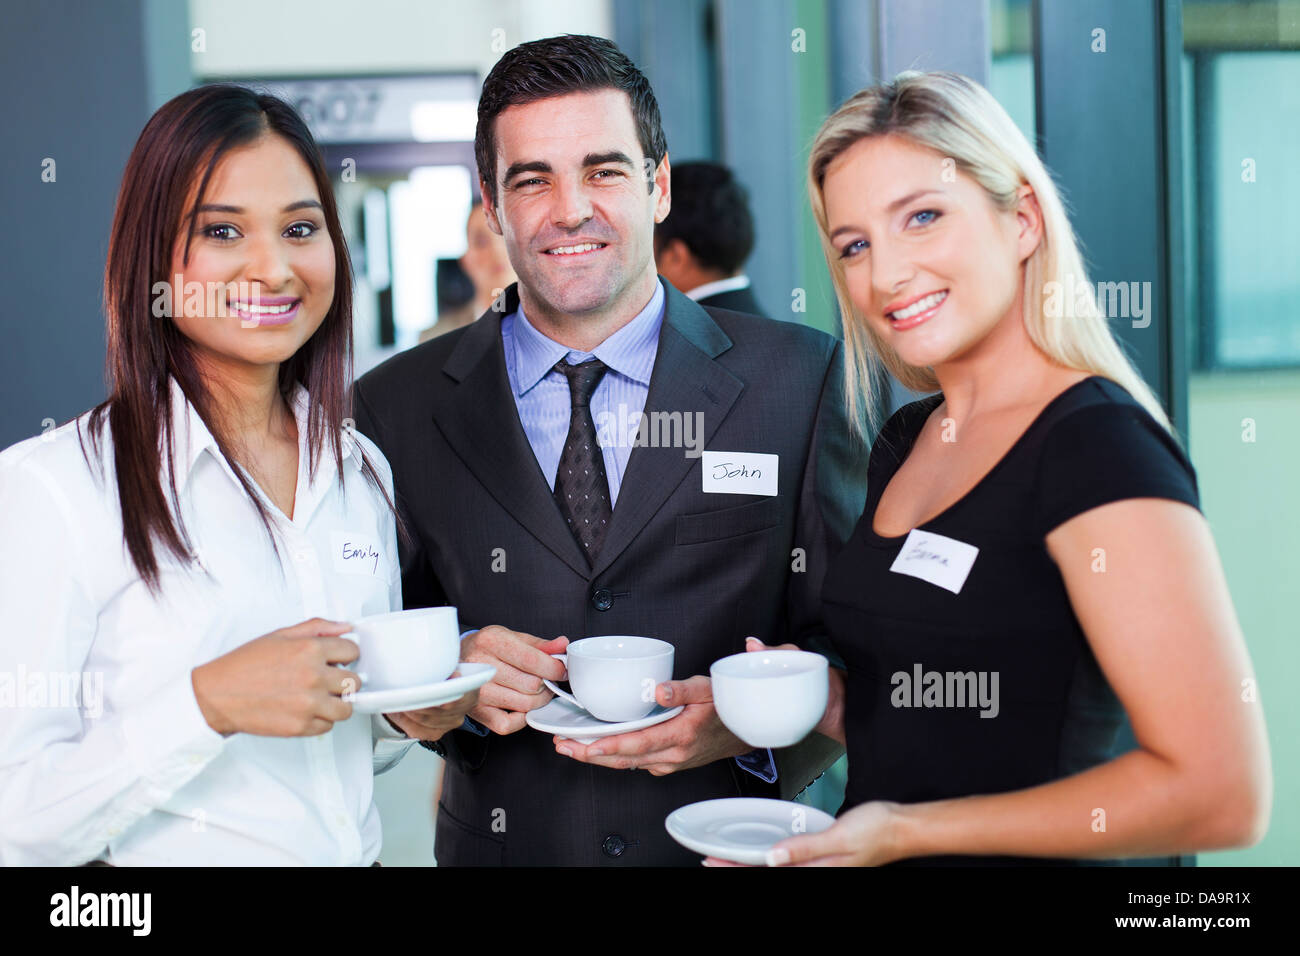 group of business people having coffee during business conference break - Stock Image